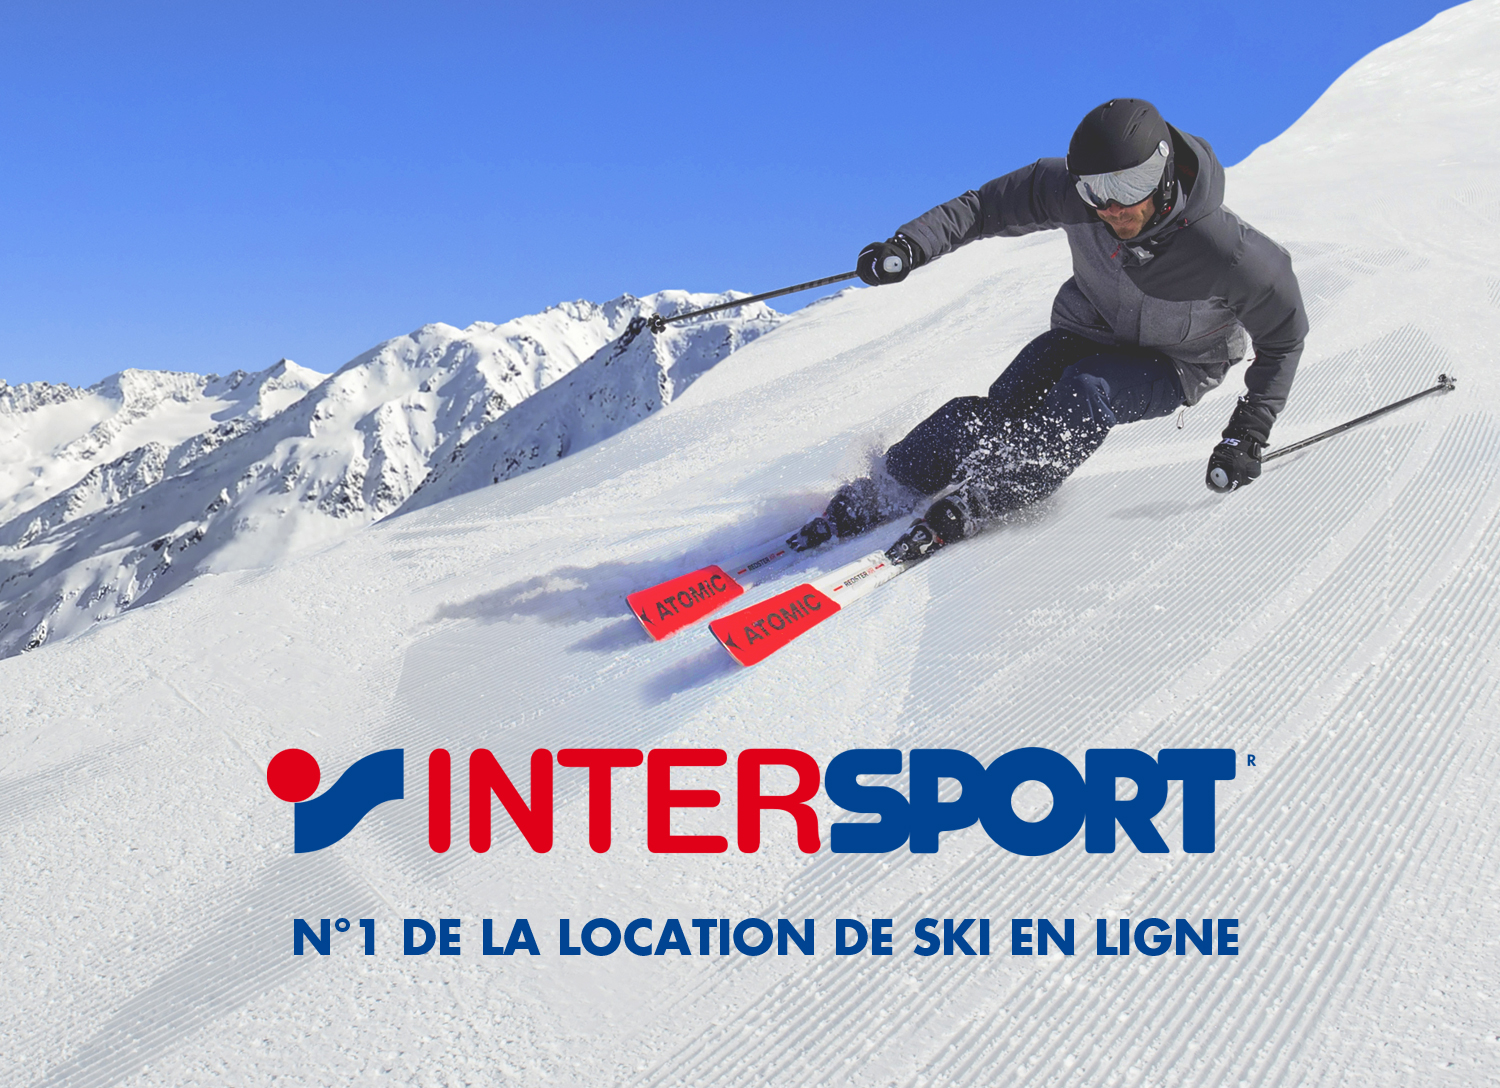 Intersport Magasin Location Ski Magasin Location Intersport Valmorel Valmorel Ski Location N8OZXnwk0P